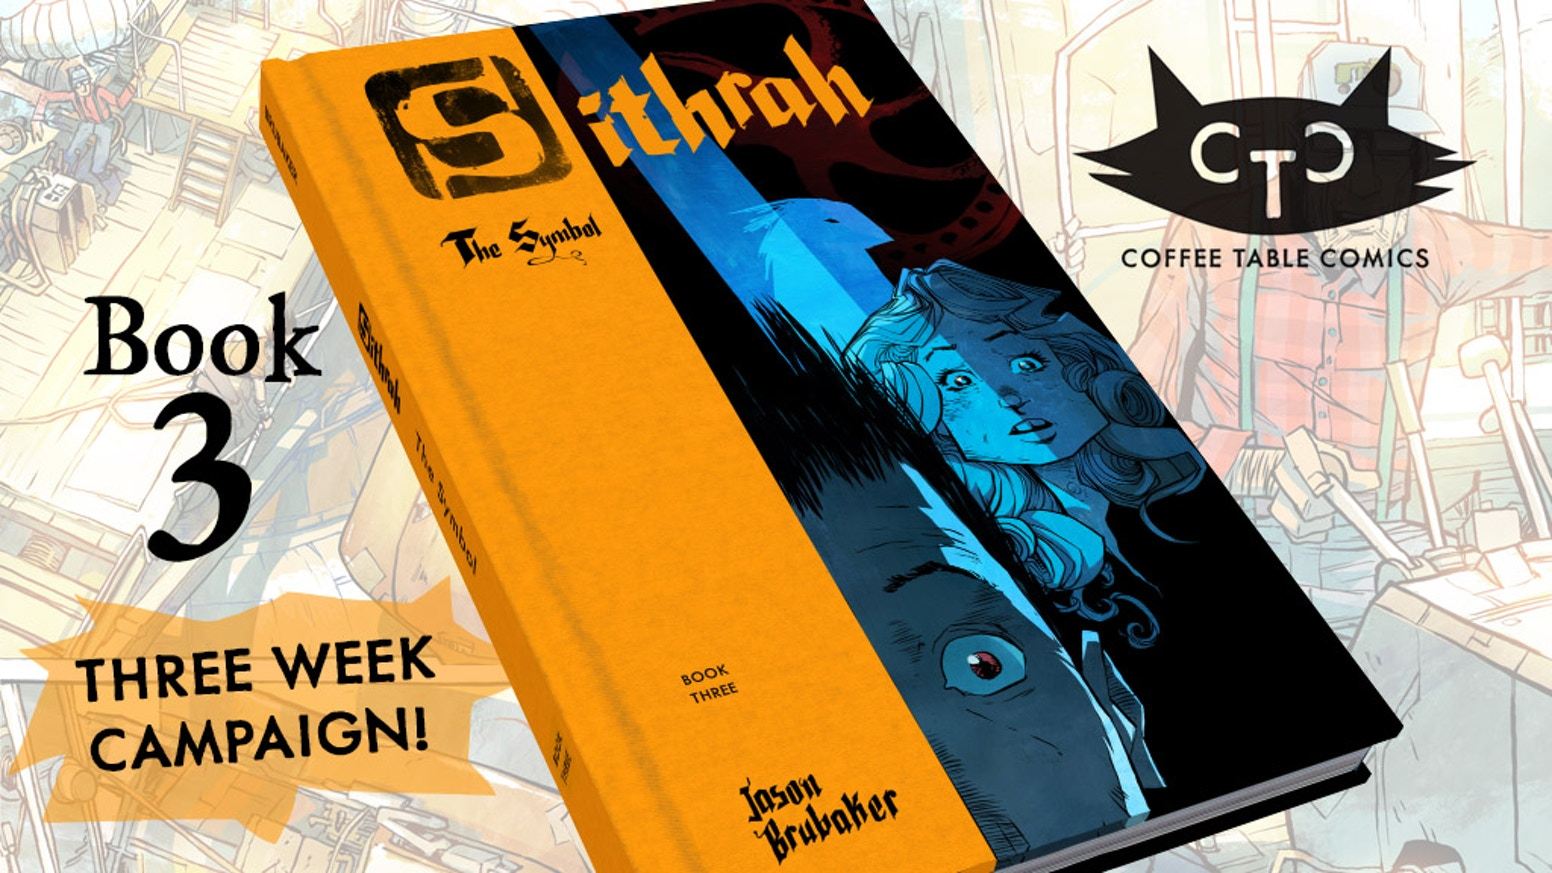 SITHRAH 3: The Symbol. This is the third installment of the beautiful hardcover comic series by Jason Brubaker.